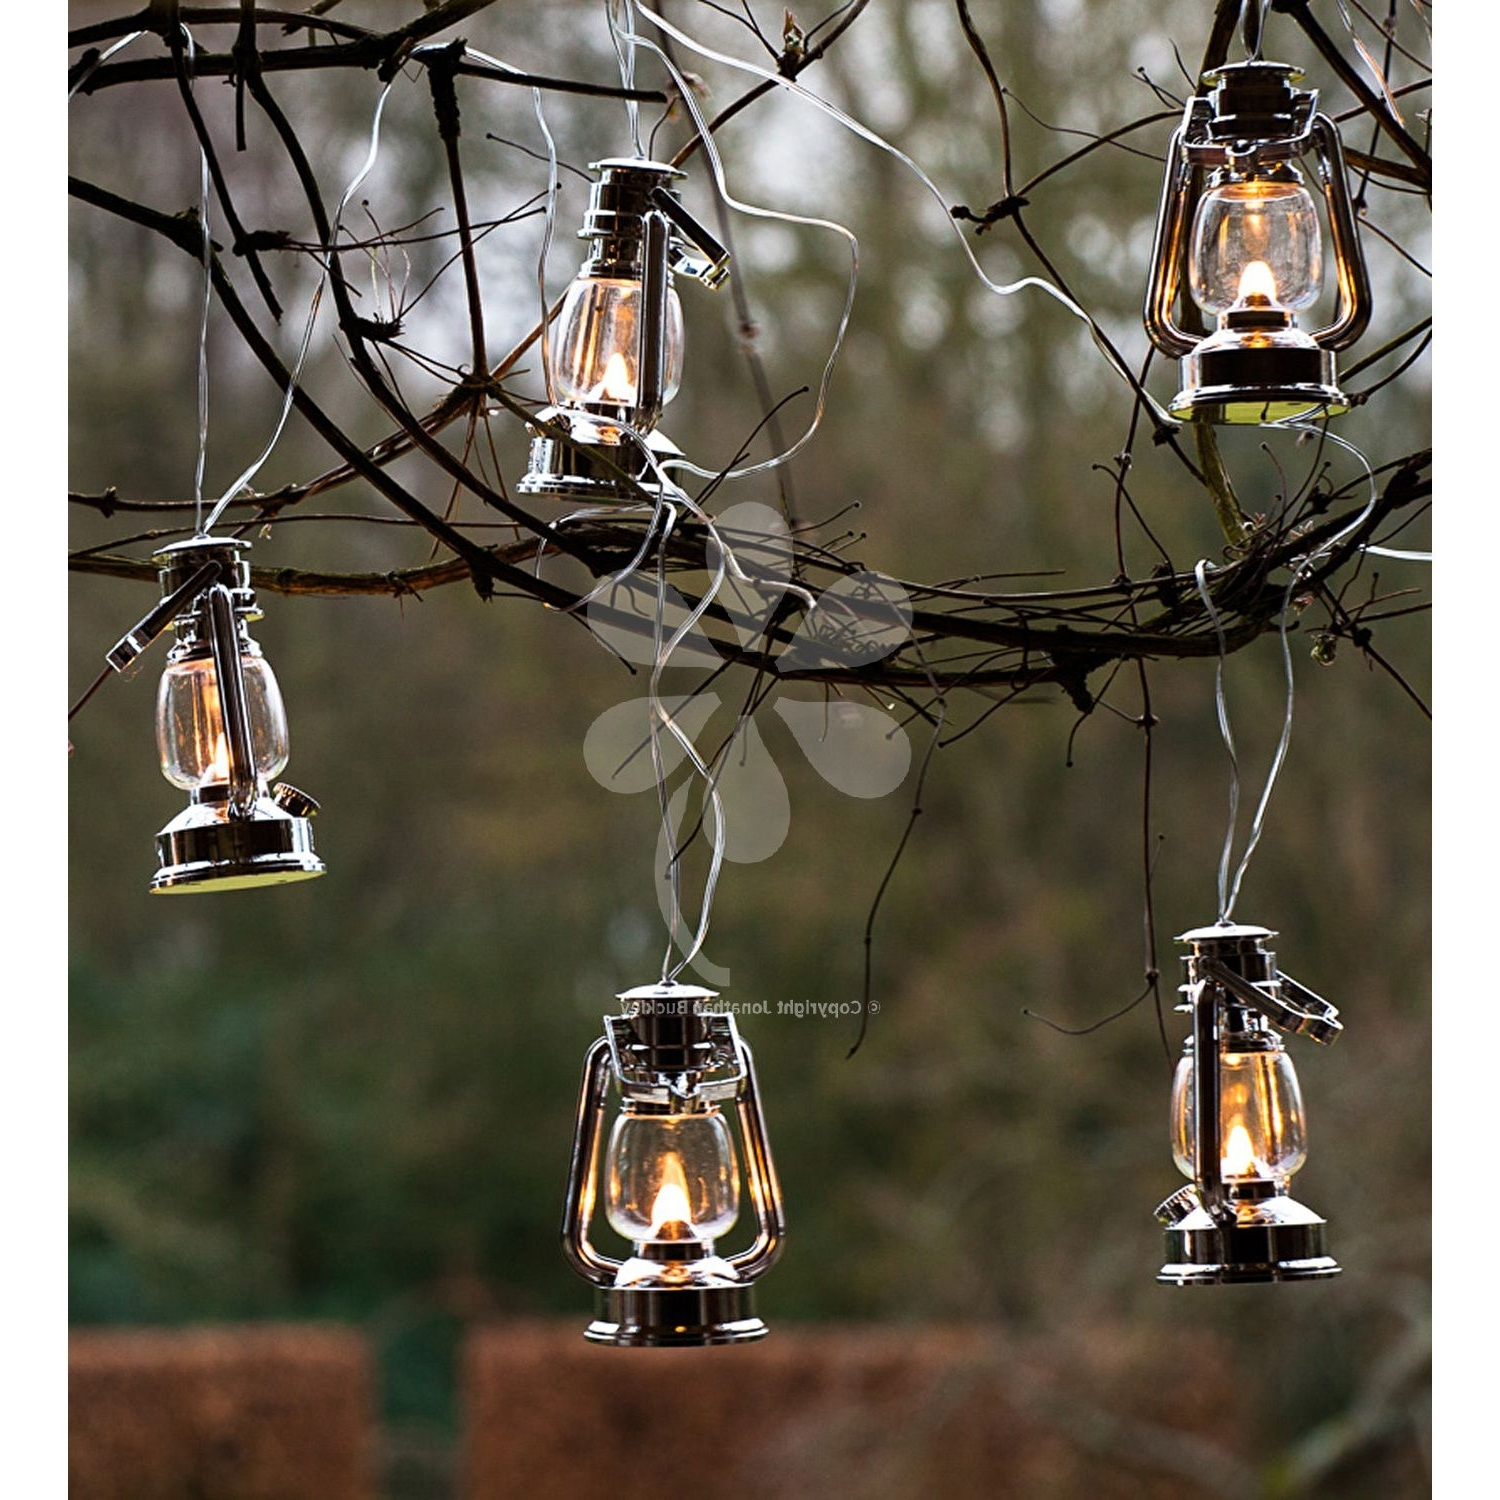 Fashionable Outdoor Mains Lanterns With Plastic Lanterns Outdoor Lights 8 Lantern On A Light Chain Mains (View 3 of 20)